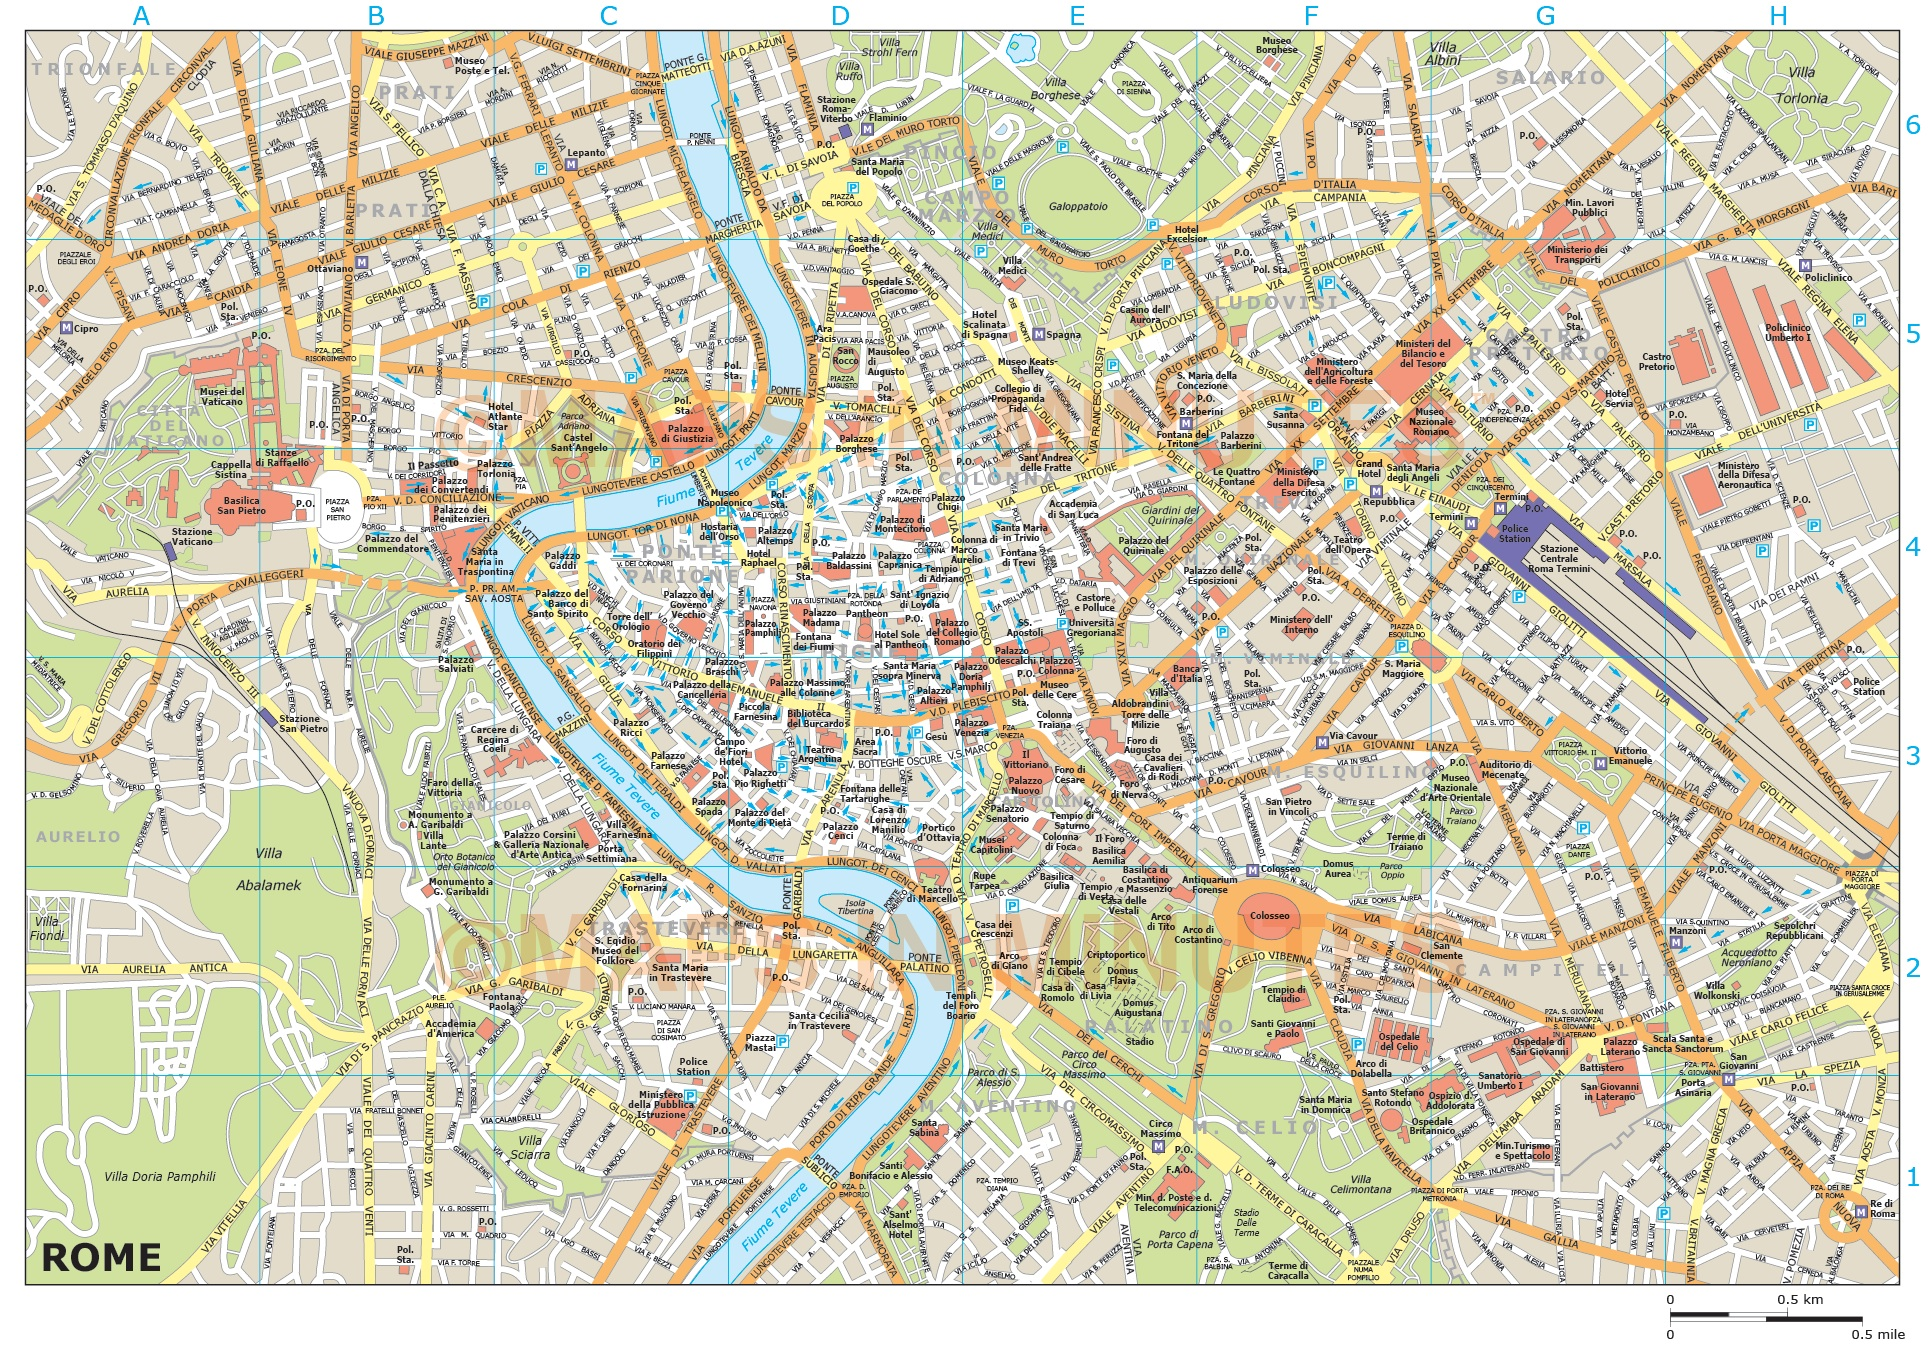 Maps related to Rome